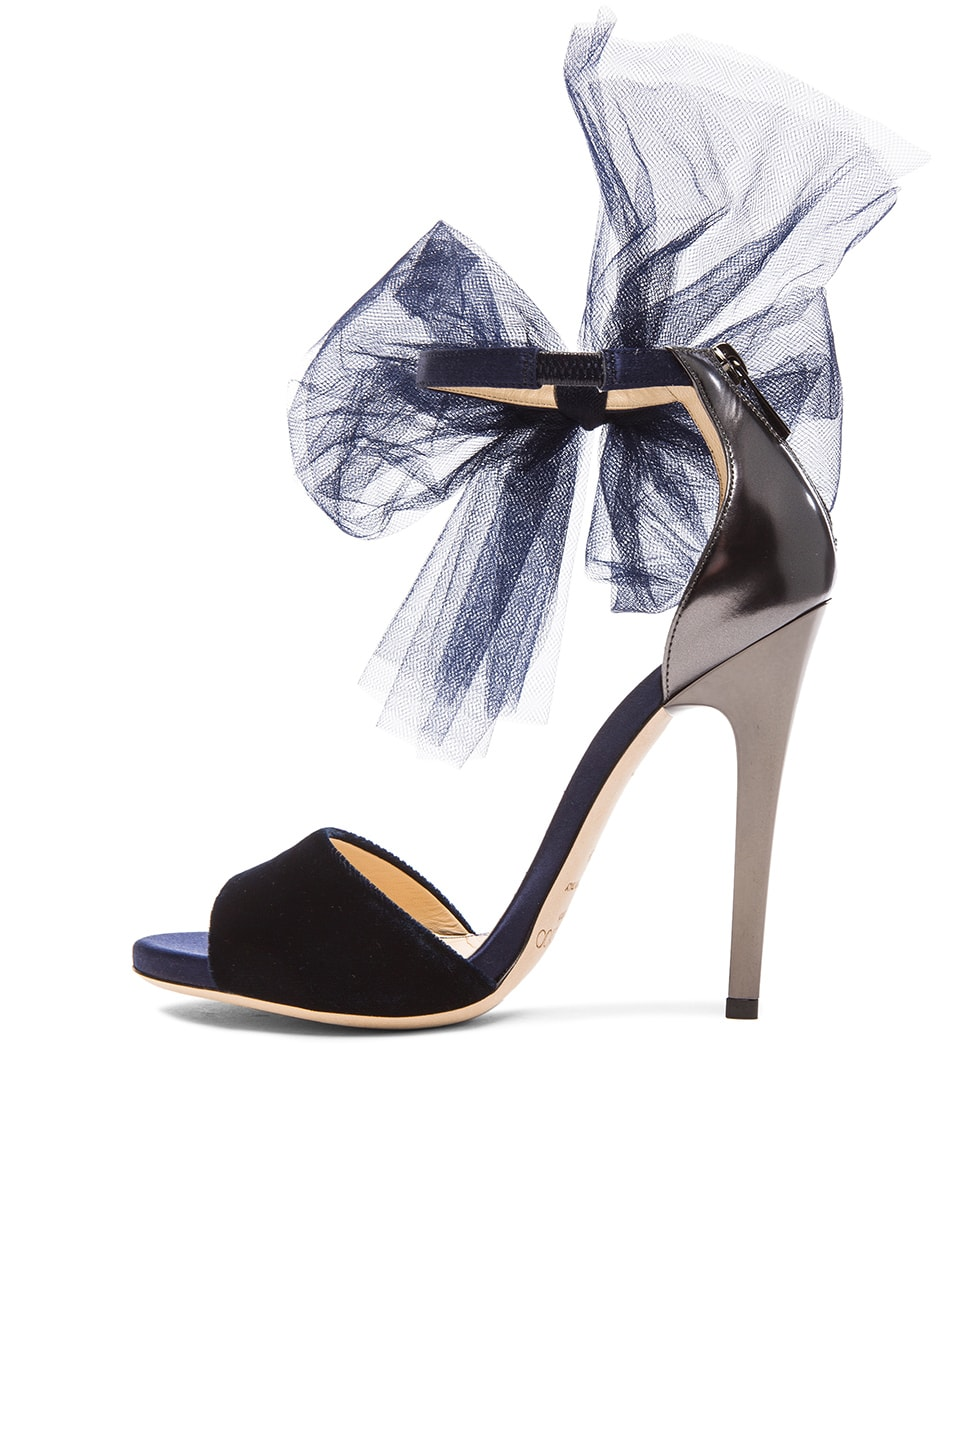 Image 5 of Jimmy Choo Lilyth Satin and Velvet Heels in Anthracite & Navy